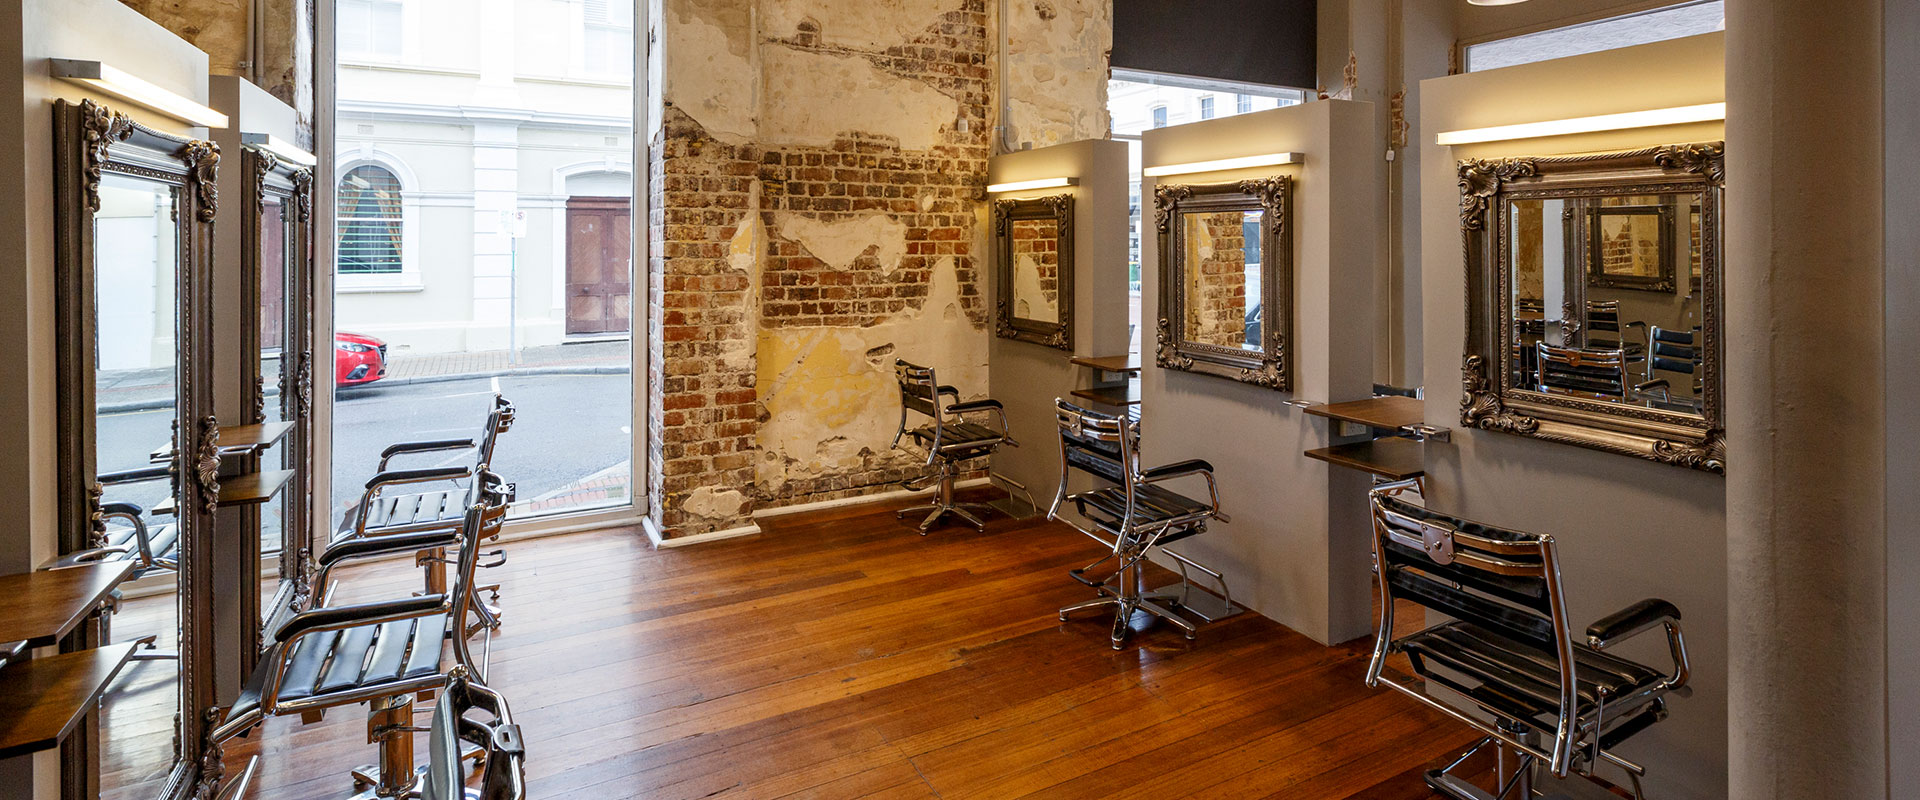 Hair Salon and Spa Perth - Djurra